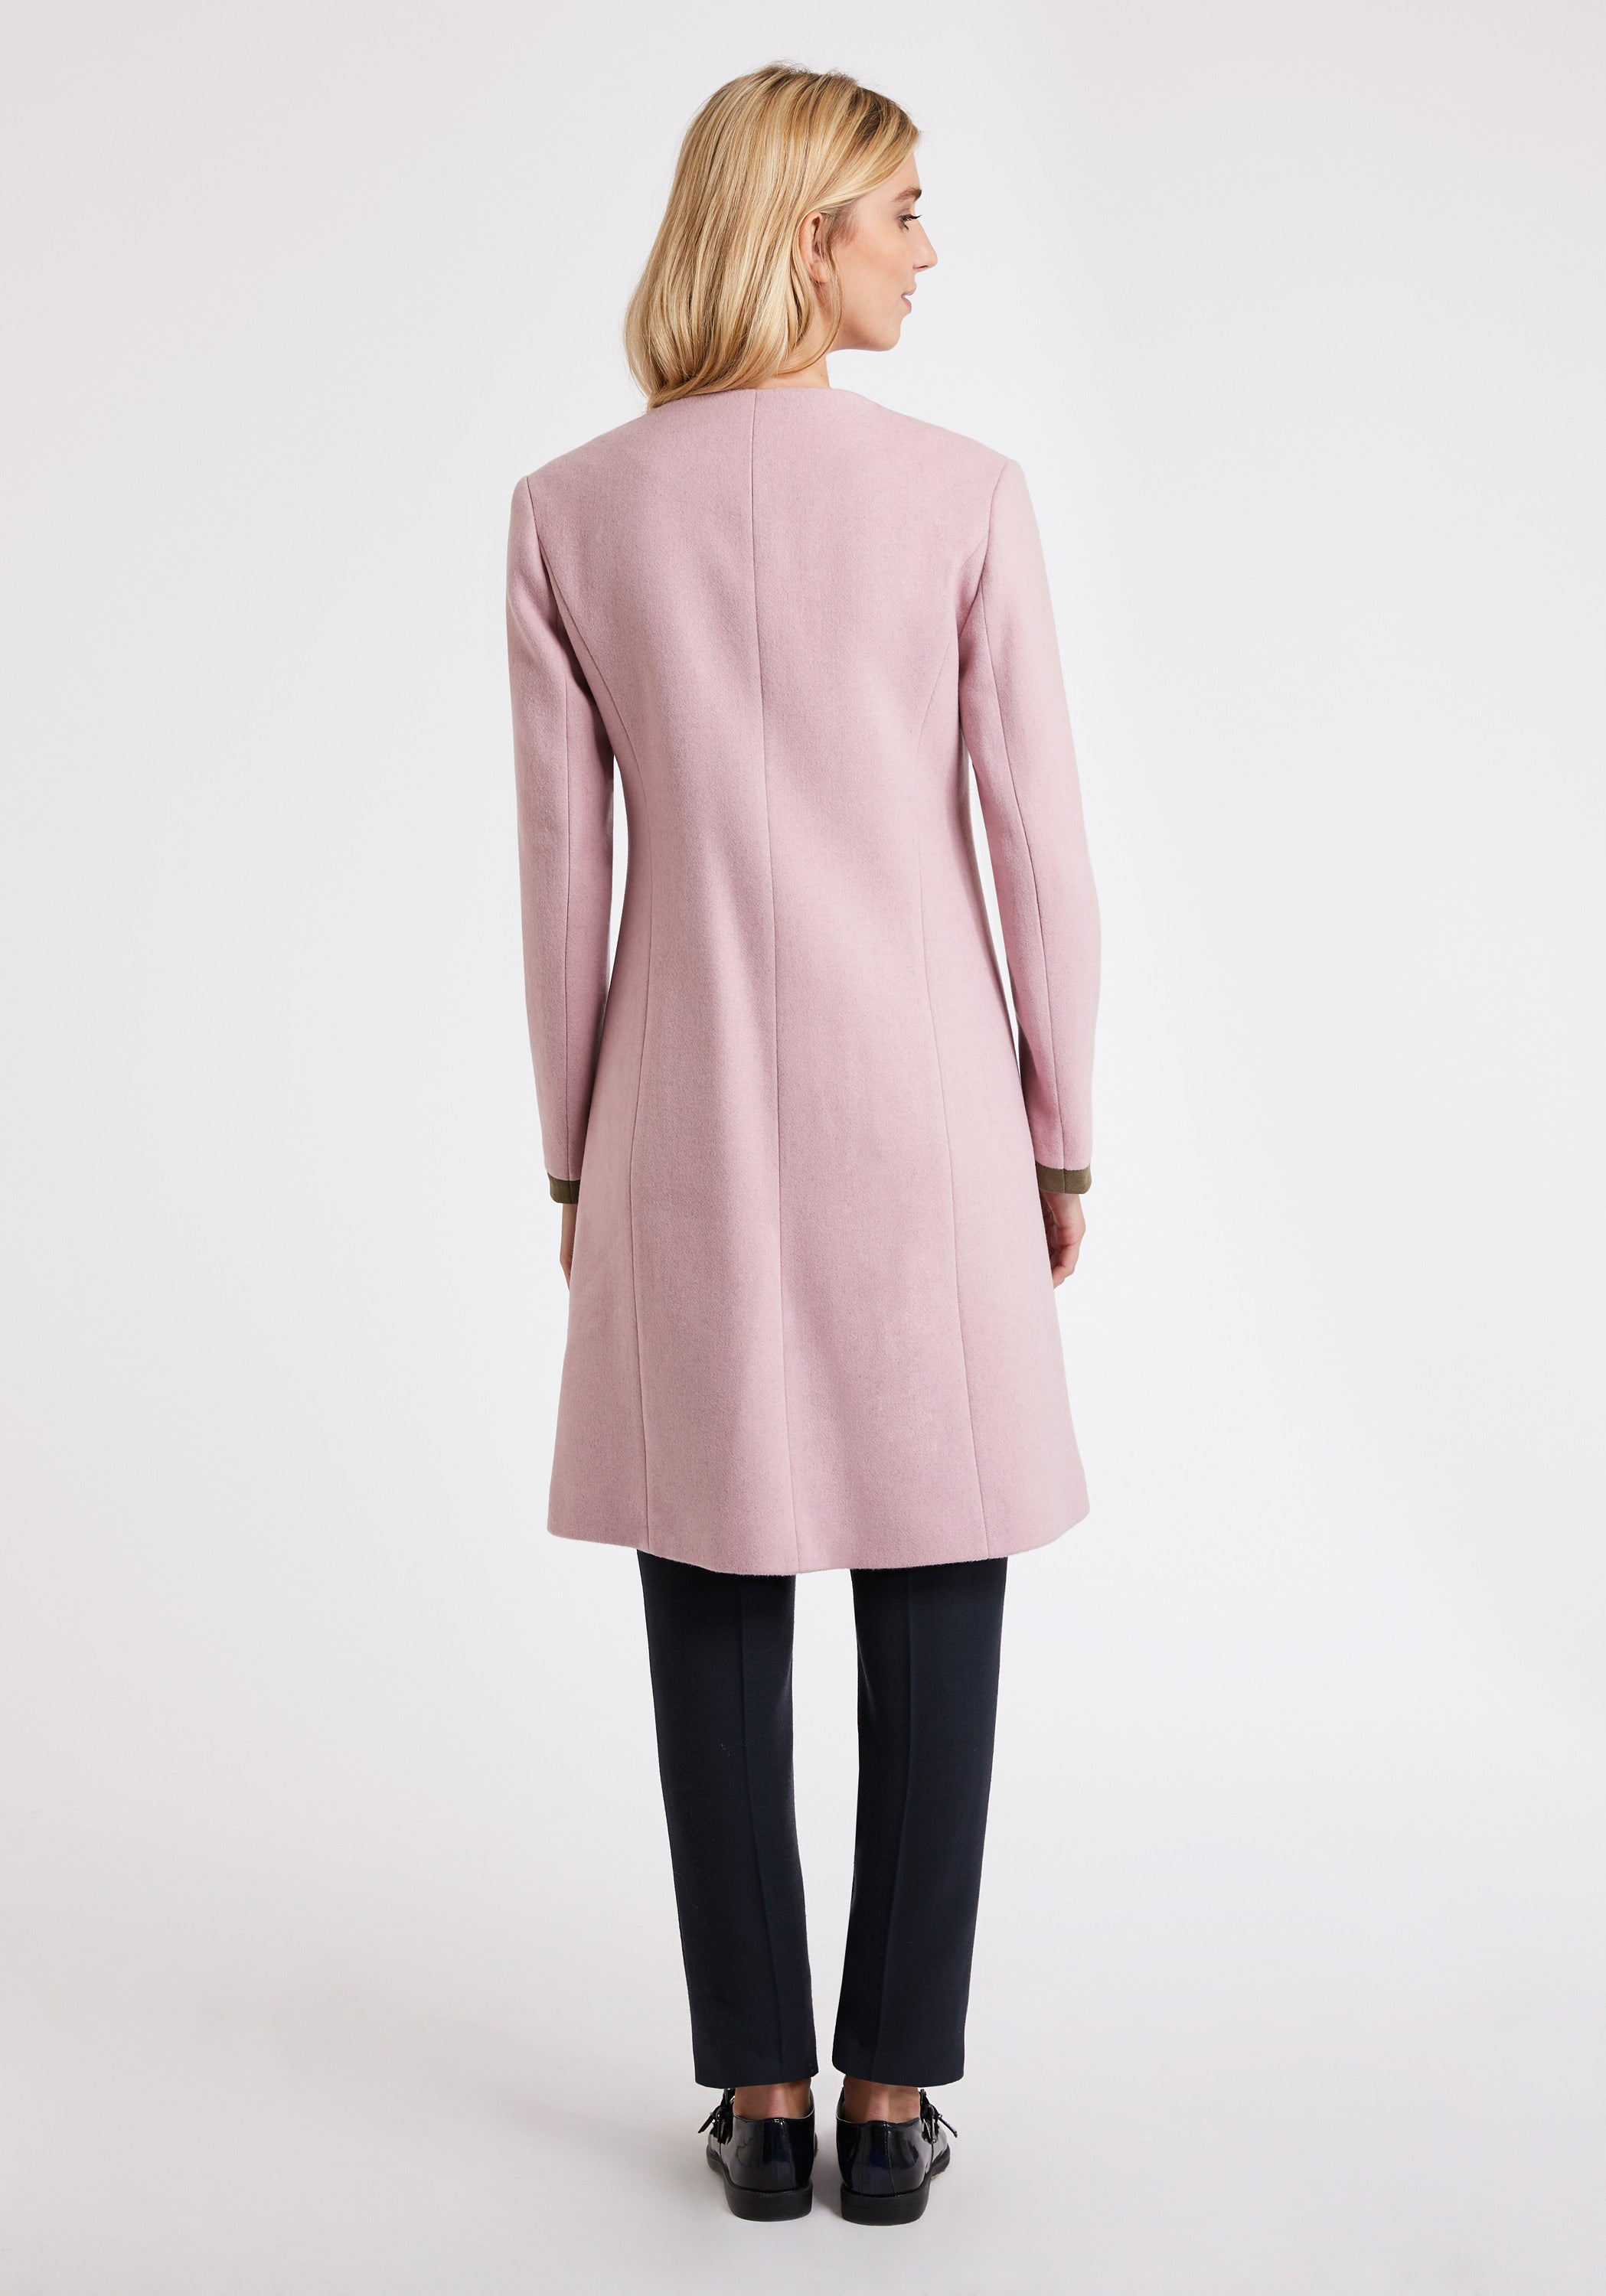 Tallulah Coat in Soft Pink Wool